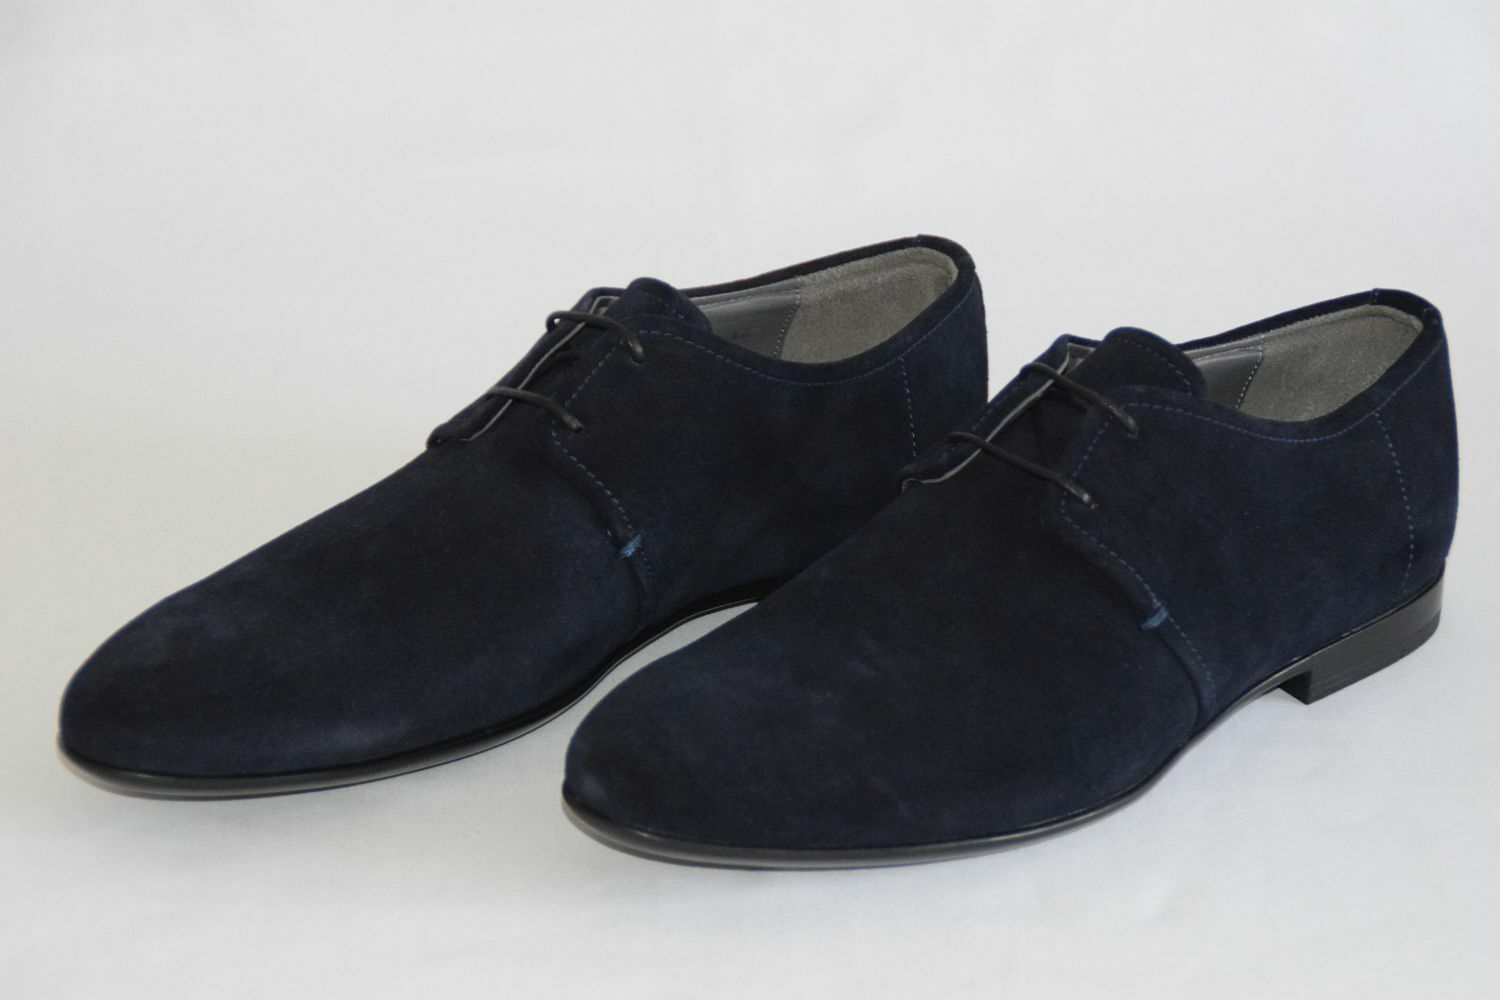 HUGO BOSS BUSINESSSCHUHE, Mod. Parols, Gr. EU 42,5 US / UK 8,5 / US 42,5 9,5  Dark Blau 8a28d8